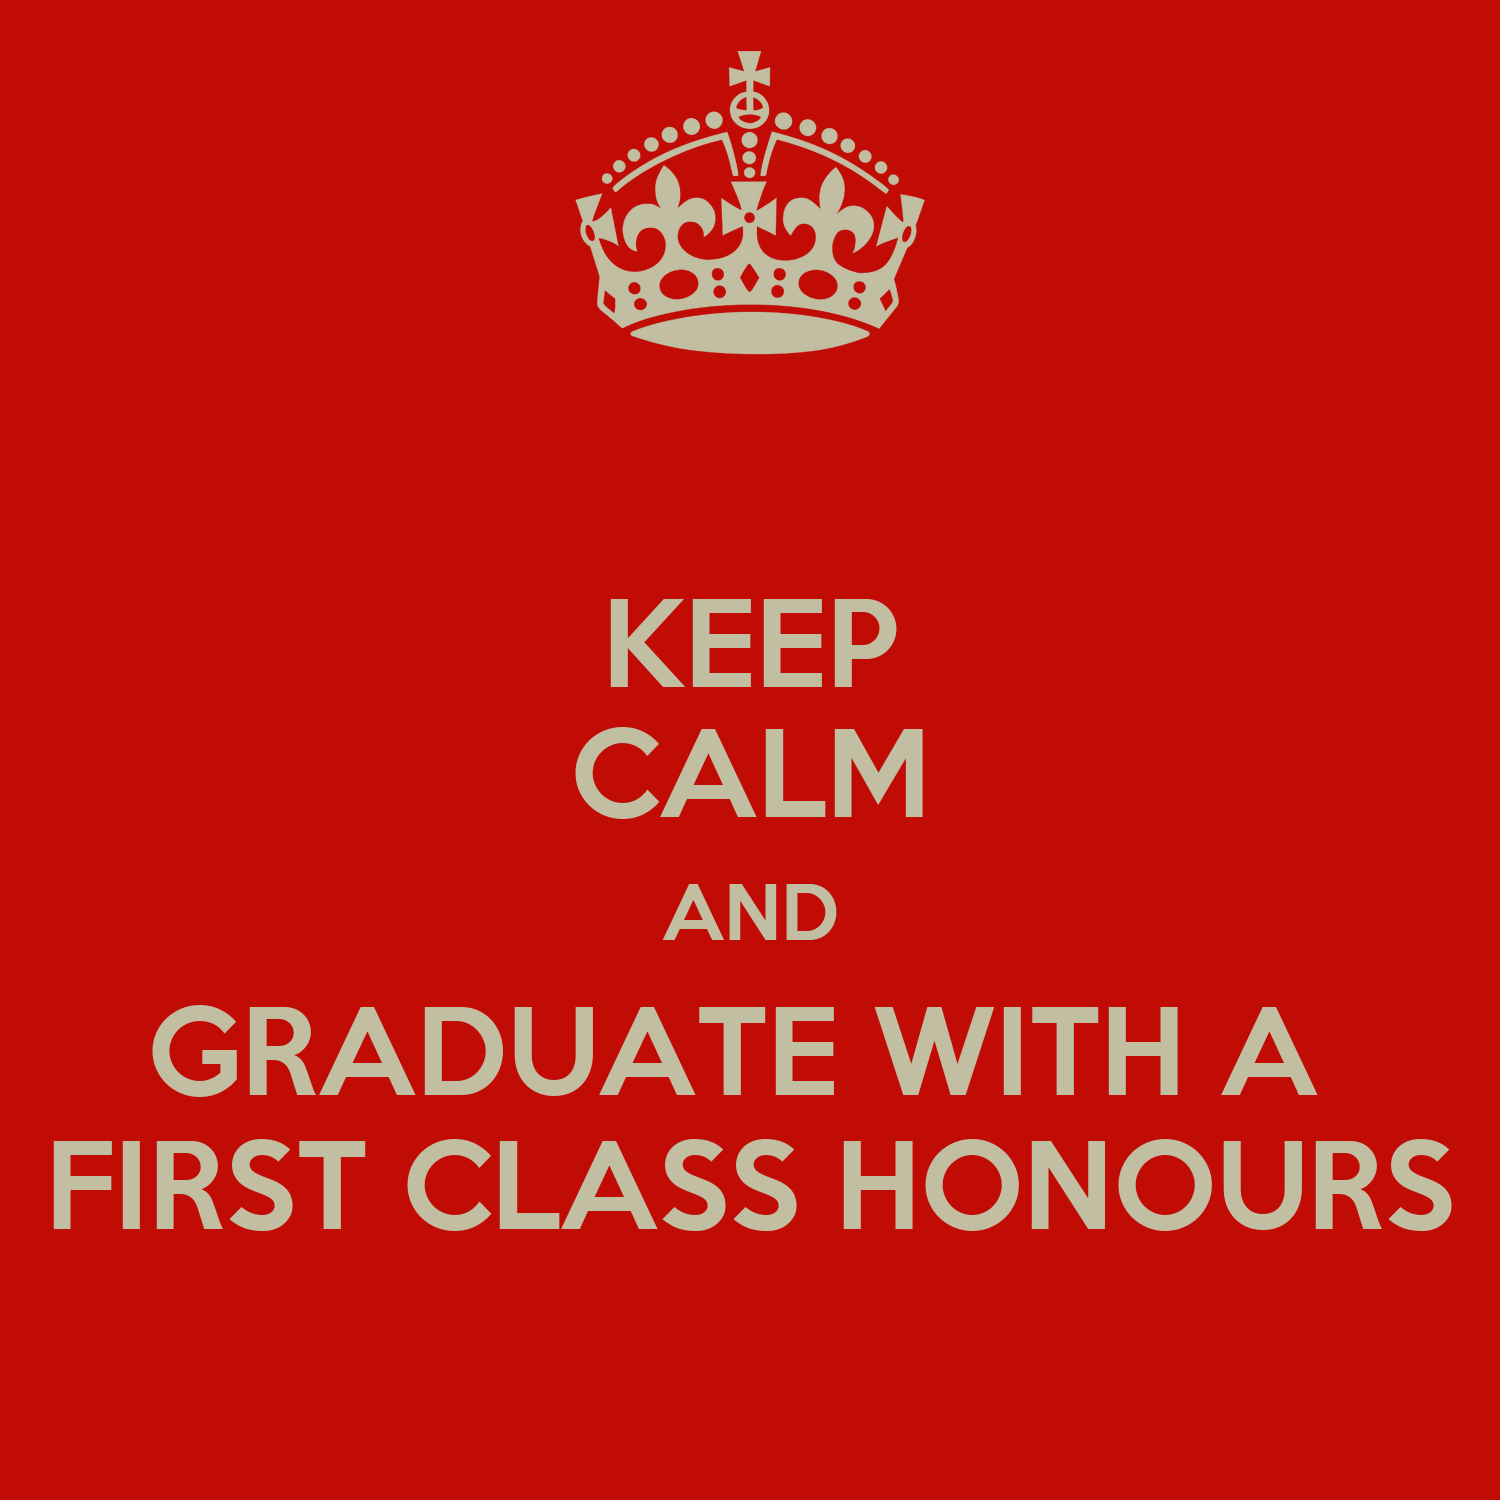 dissertation kingston university olivia carpenter llb law first keep calm and graduate a first class honours poster hasitha